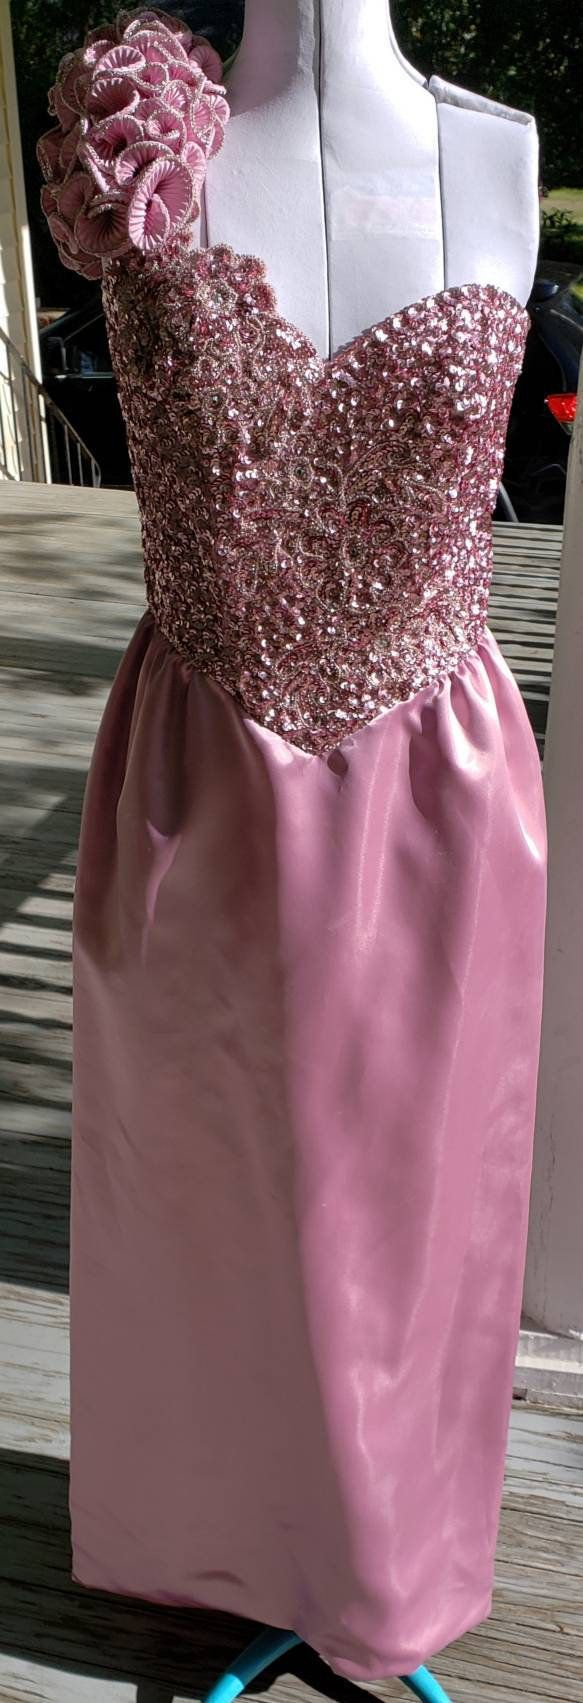 Ss prom dress rose pink asymmetrical ruffled strap sequin